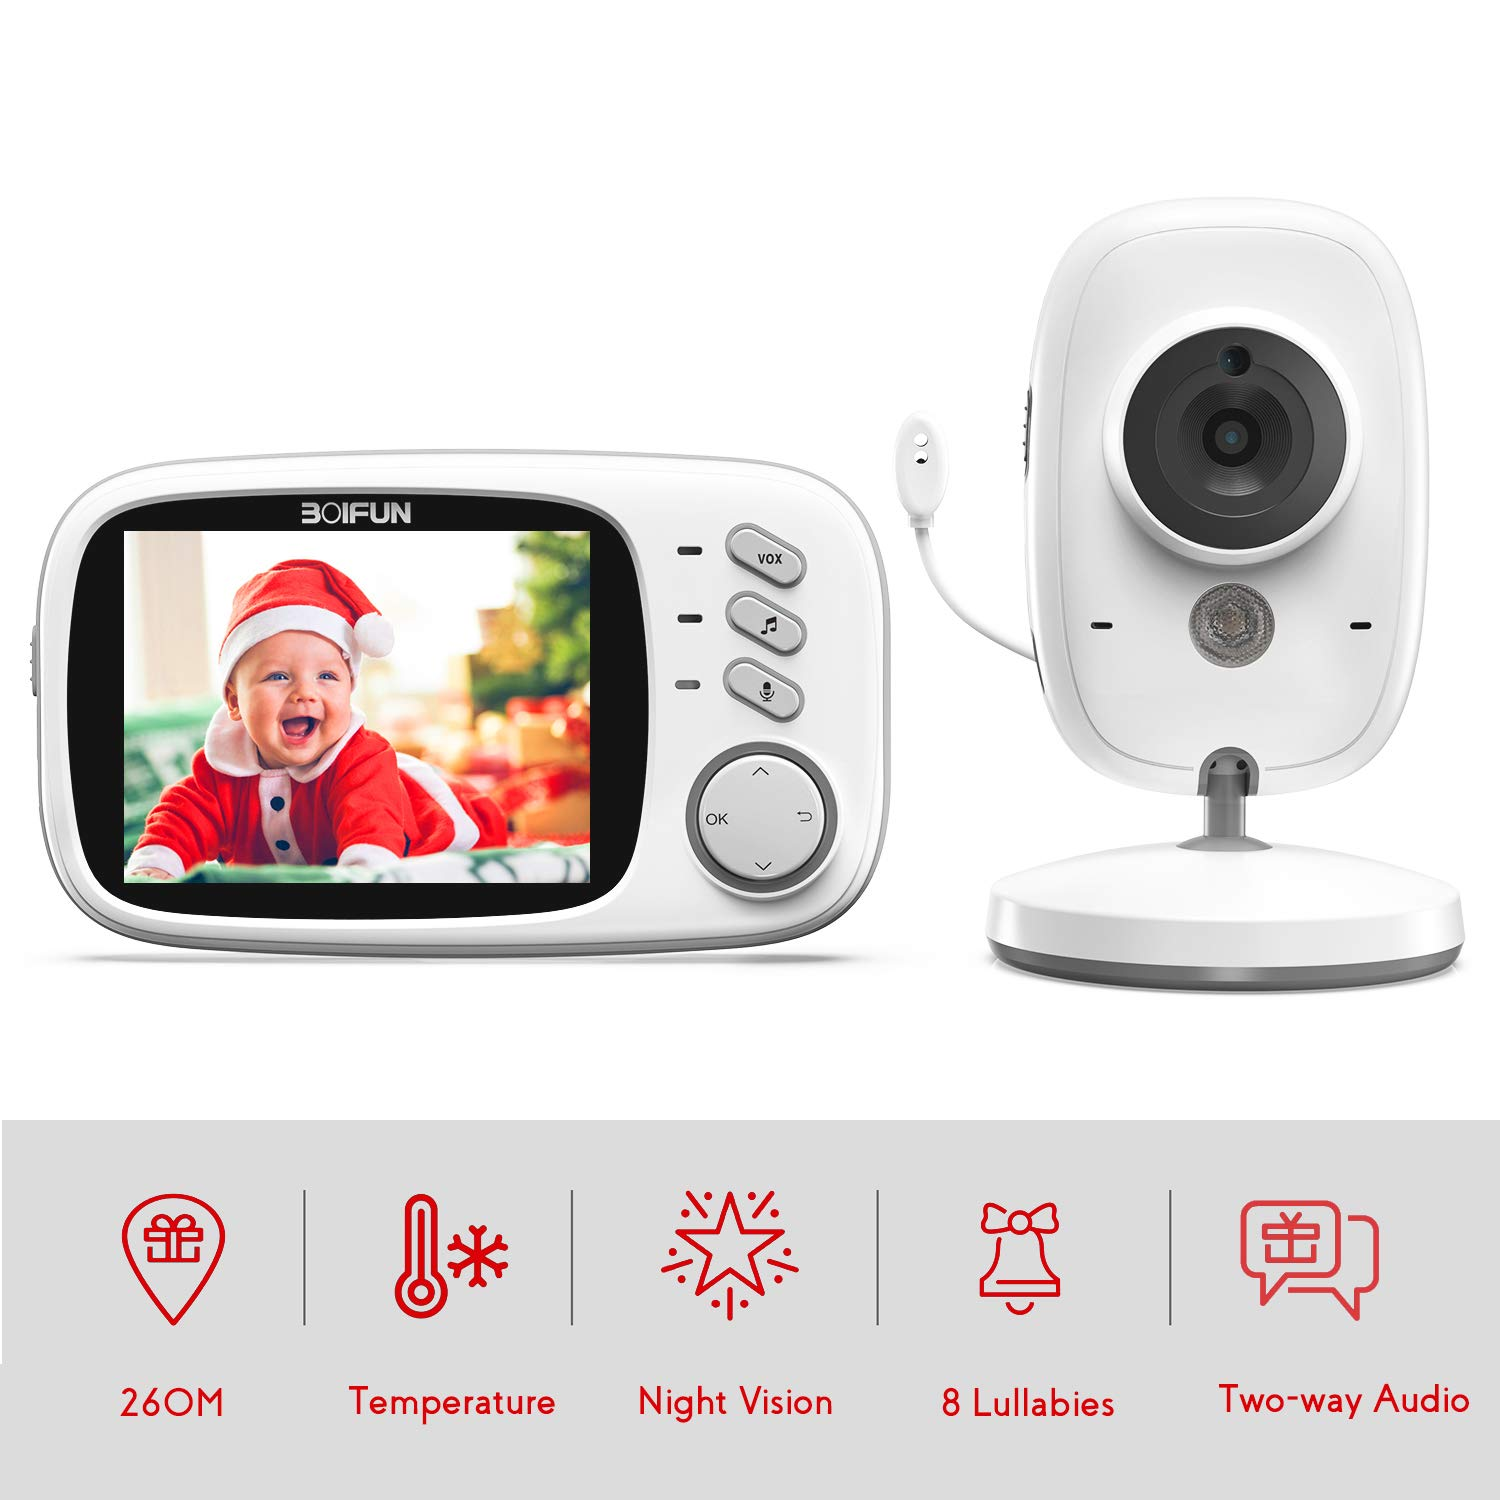 BOIFUN with 3.2 LCD Screen 300 Meters 2.4Ghz Wireless Stable Connection Rechargeable Battery VOX Night Vision Temperature Monitor Two-Way Talk Baby//Elderly//Pet Baby Monitor with Camera